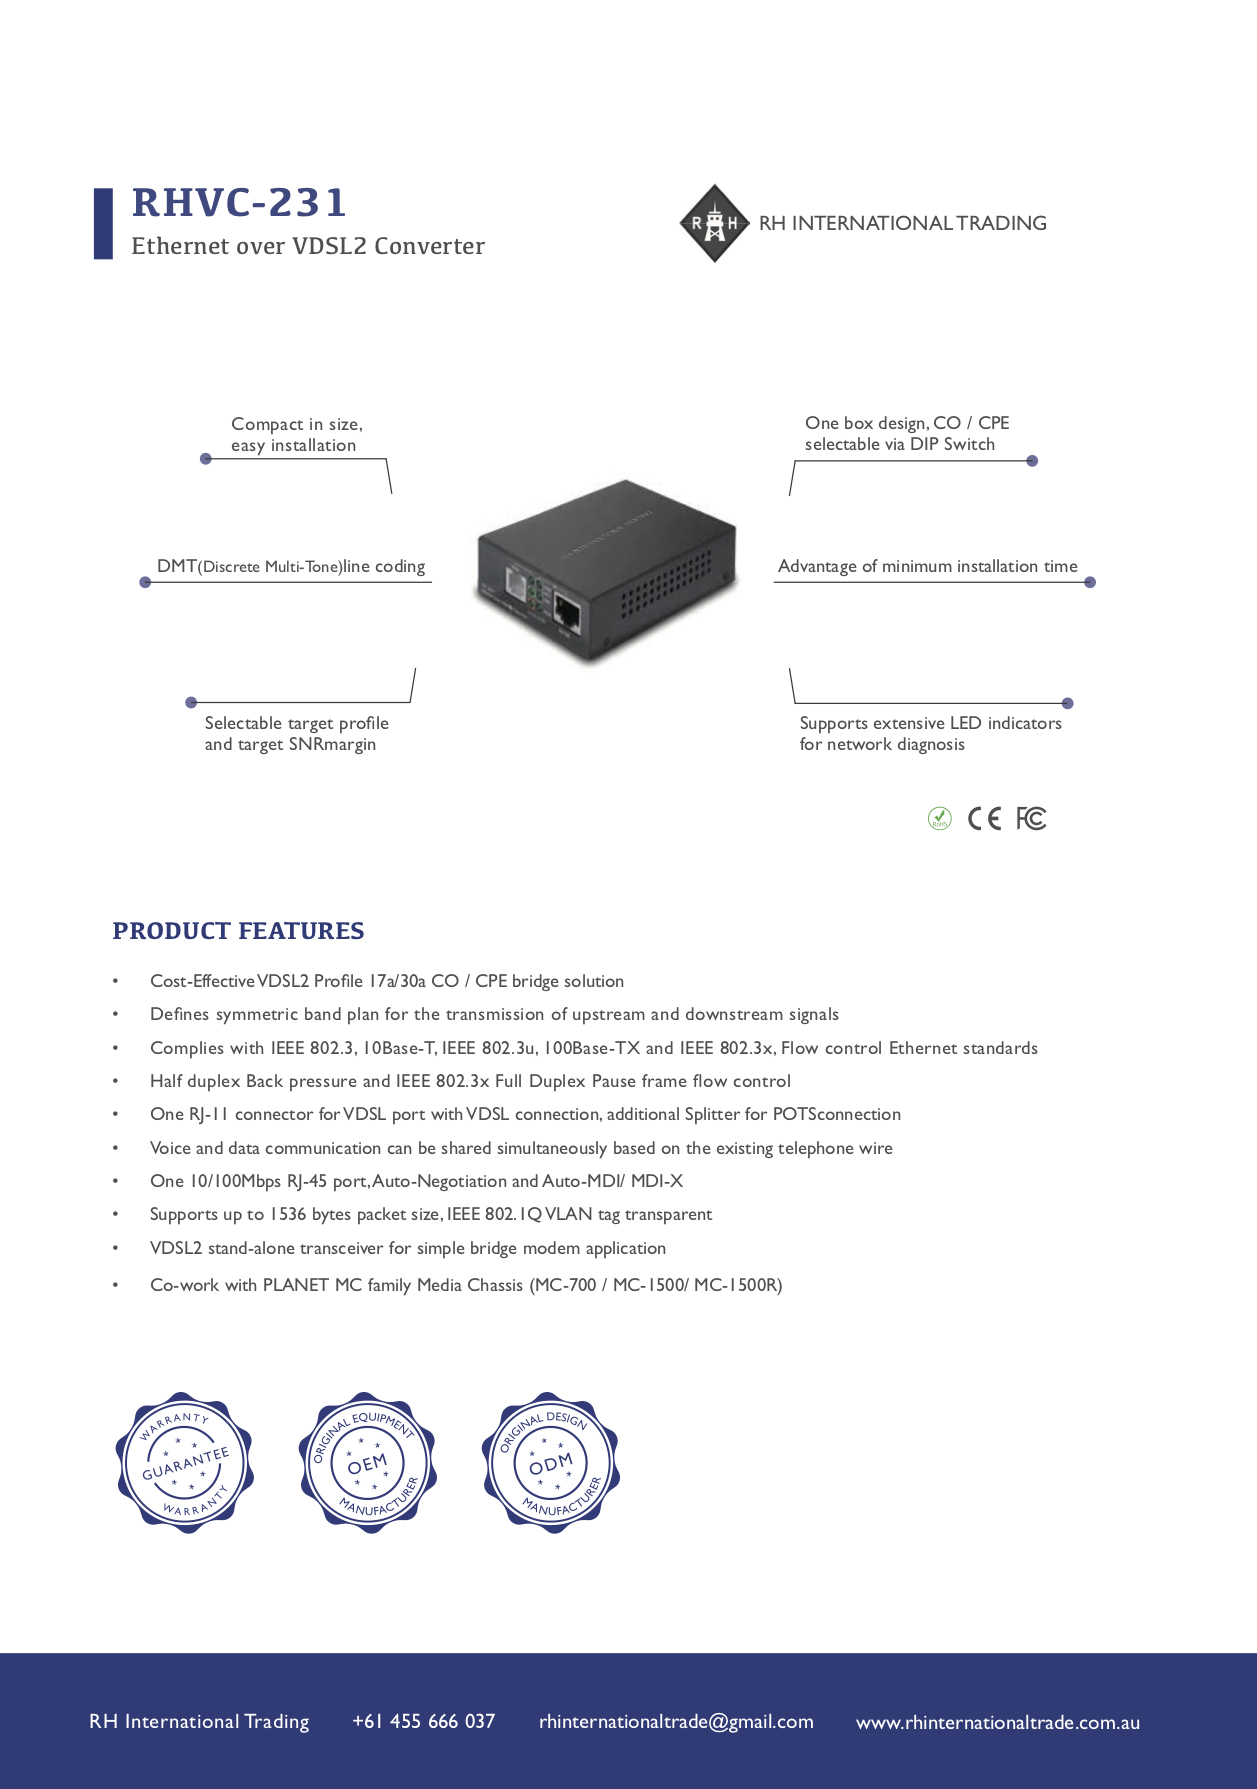 Ethernet Converter to VDSL2